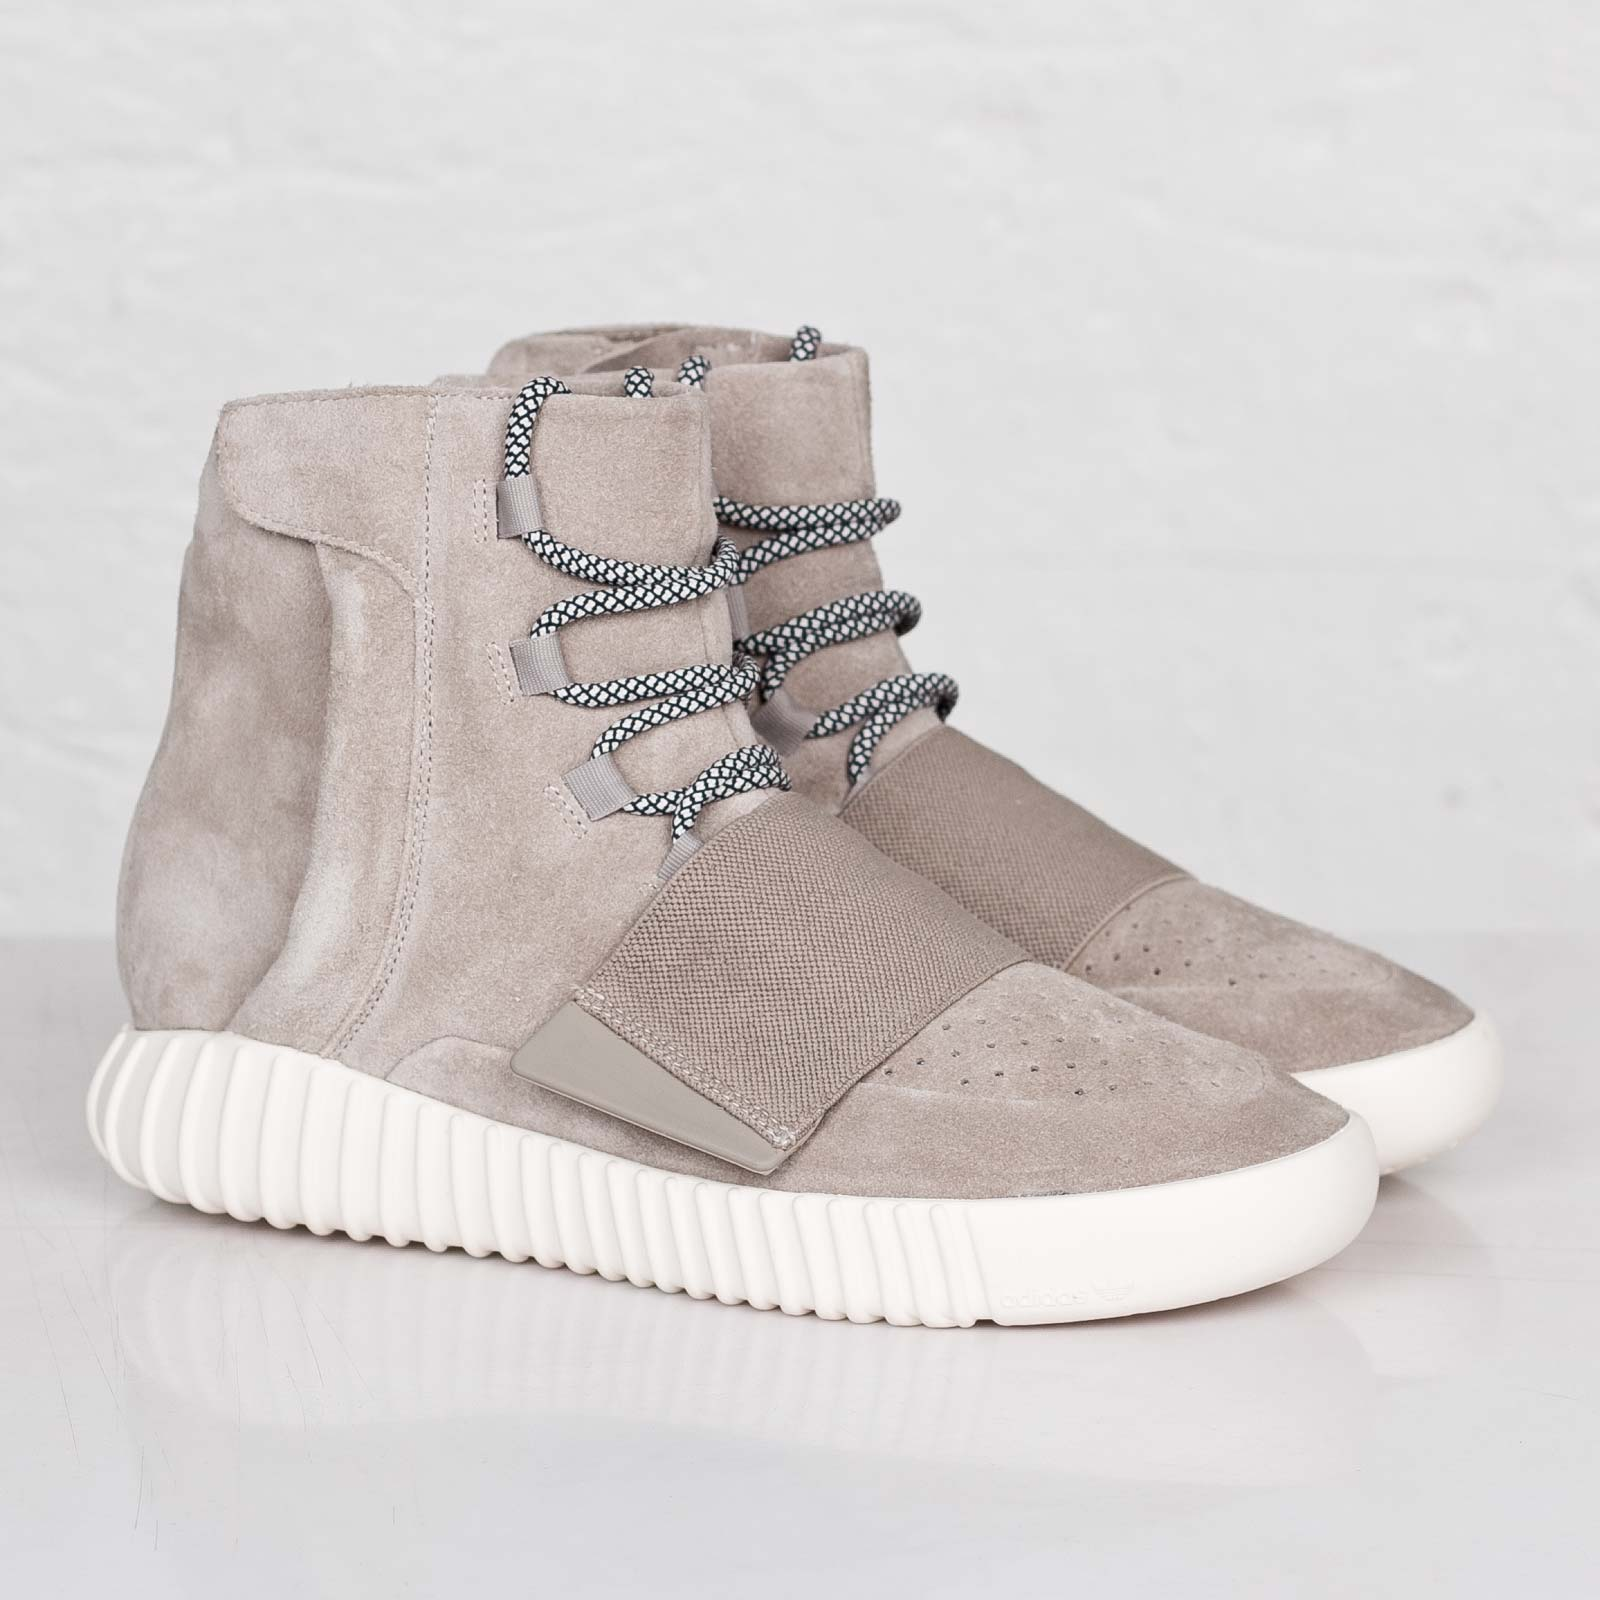 huge selection of 601e3 dc967 adidas Yeezy 750 Boost - B35309 - Sneakersnstuff | sneakers ...